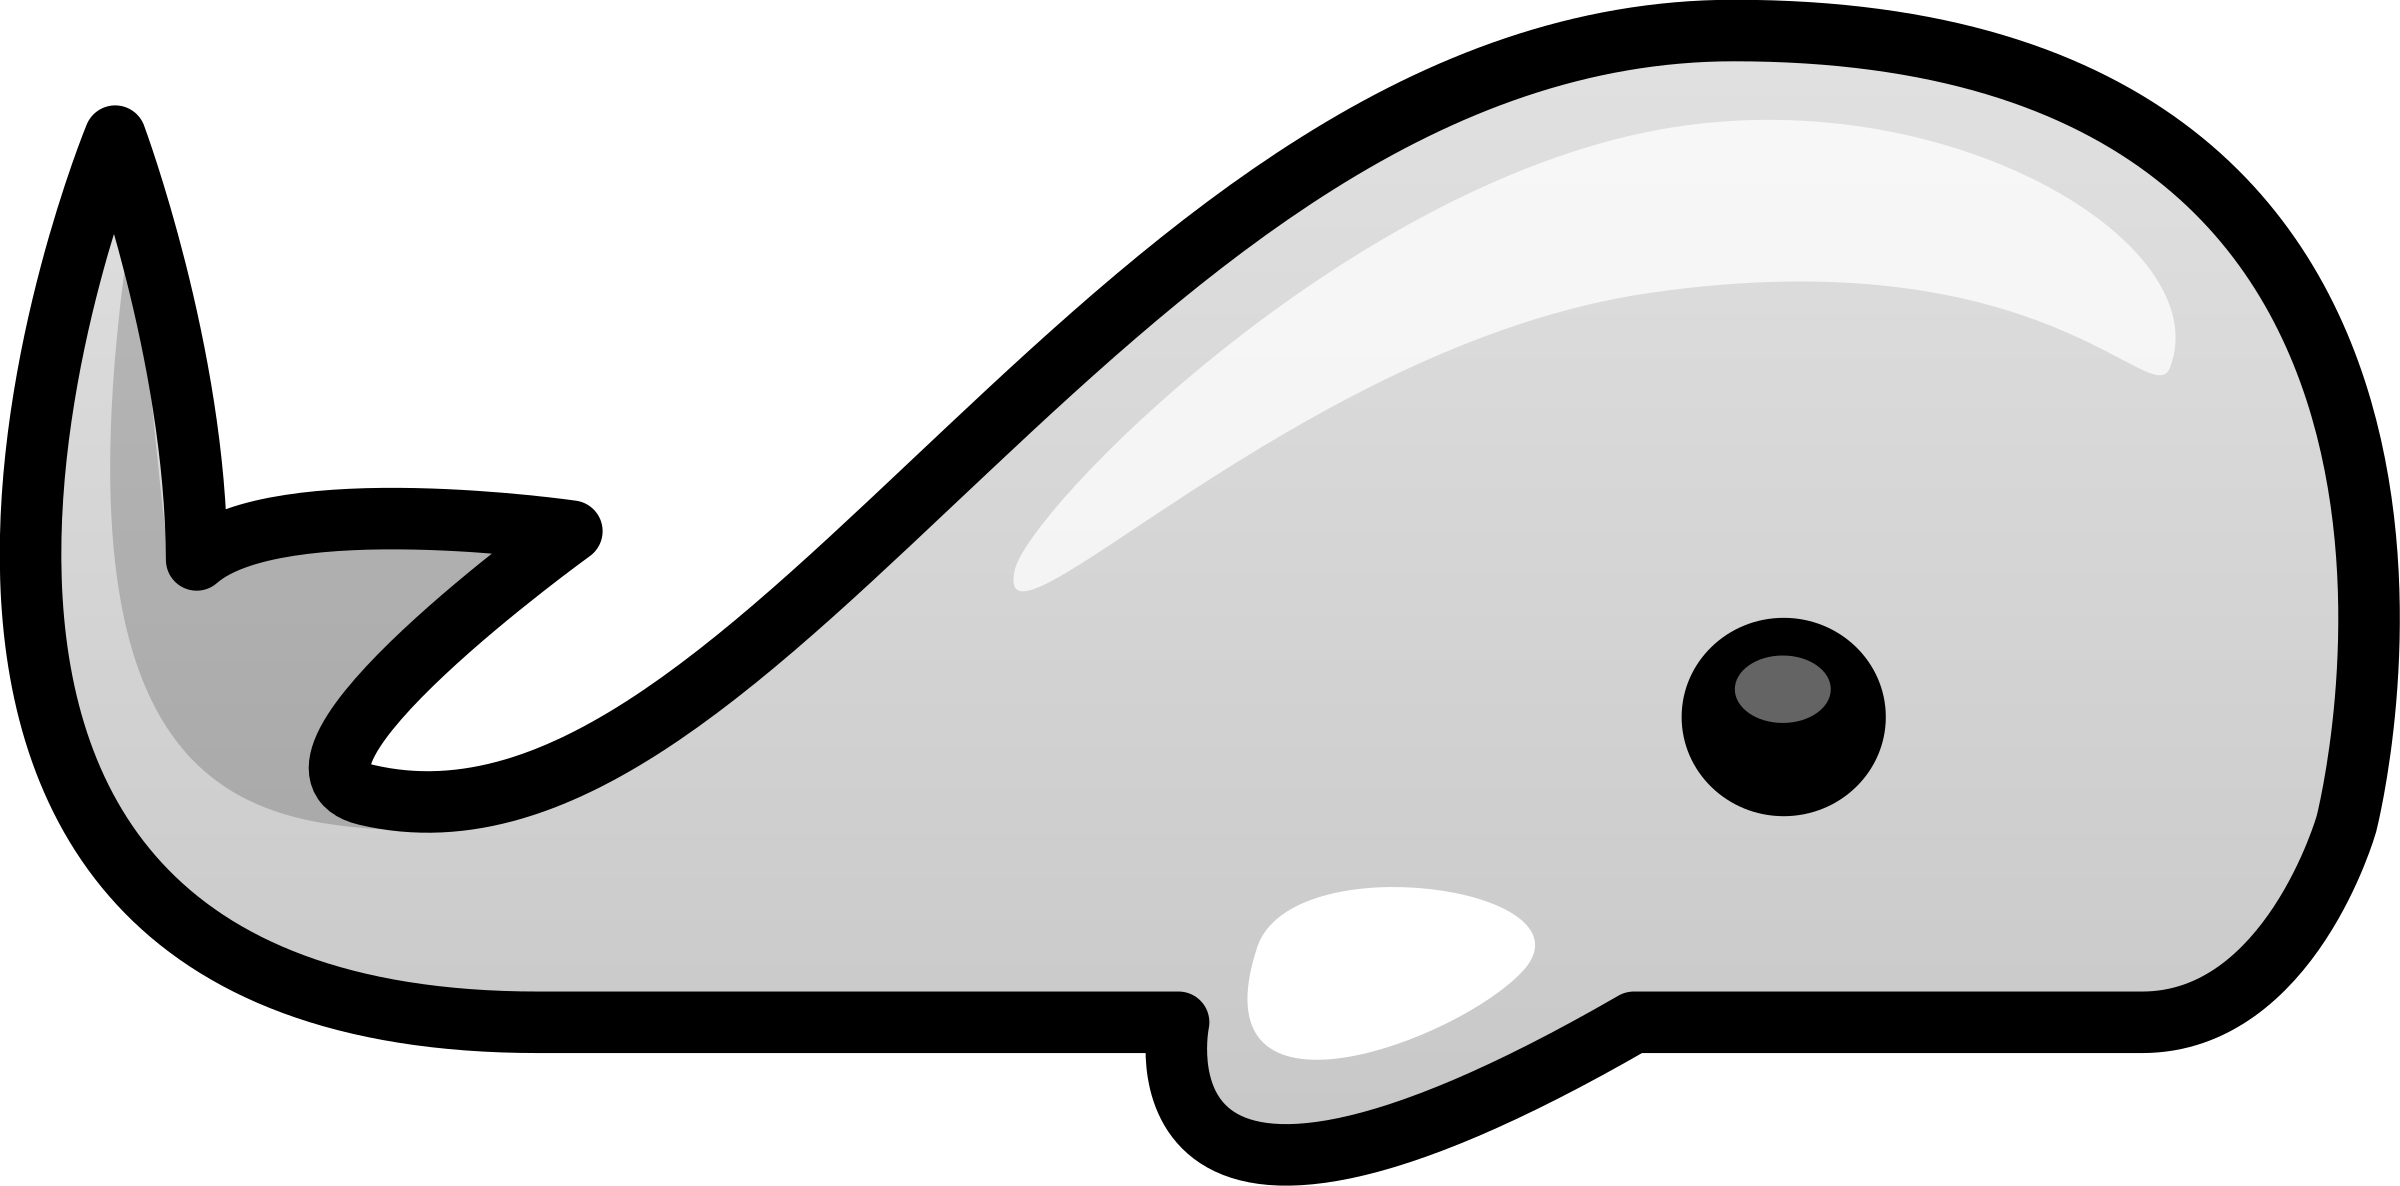 Small whale by lemmling